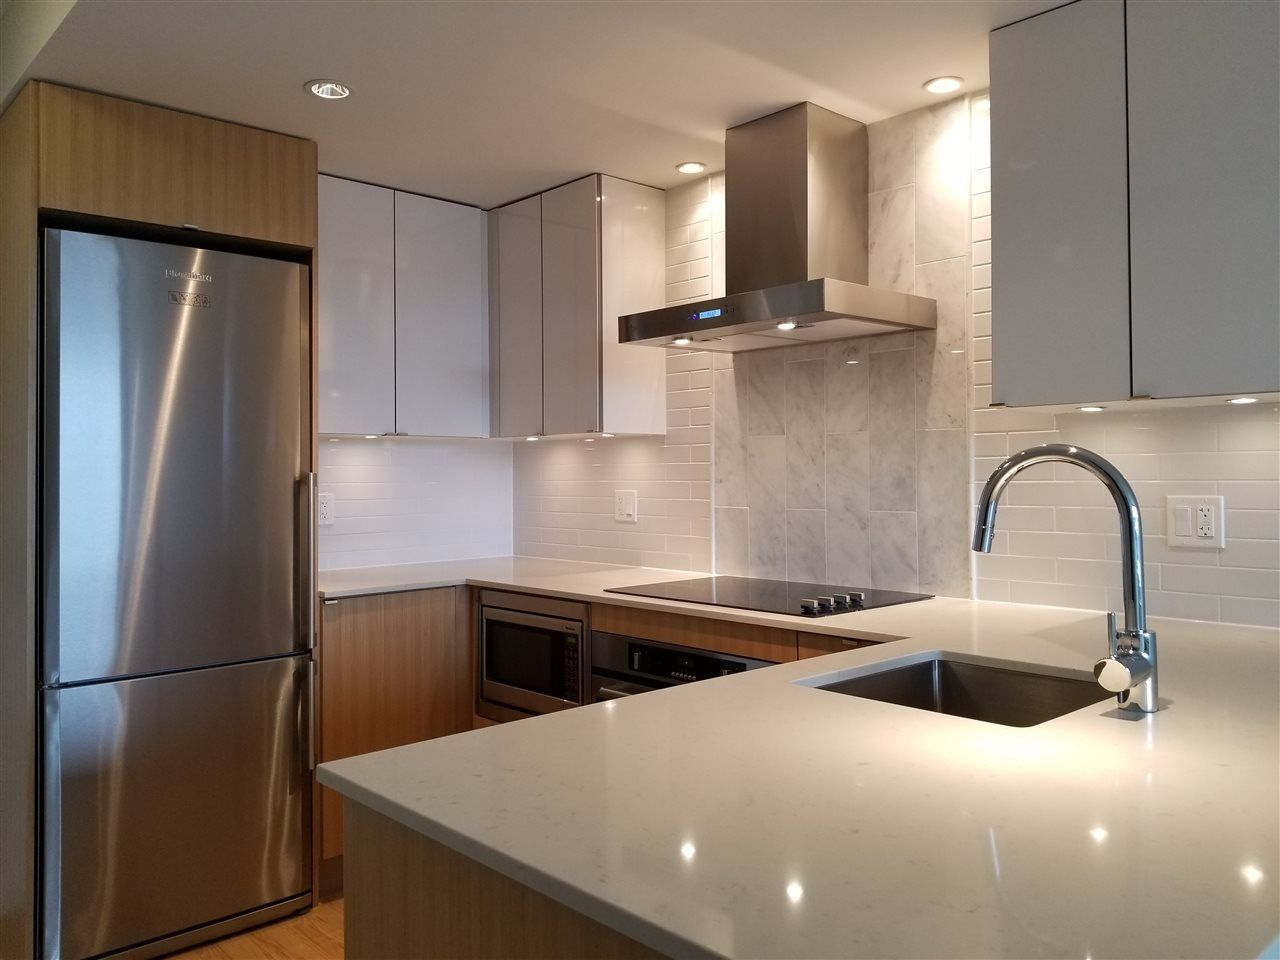 """Main Photo: 516 159 W 2ND Avenue in Vancouver: False Creek Condo for sale in """"TOWER GREEN AT WEST"""" (Vancouver West)  : MLS®# R2240617"""